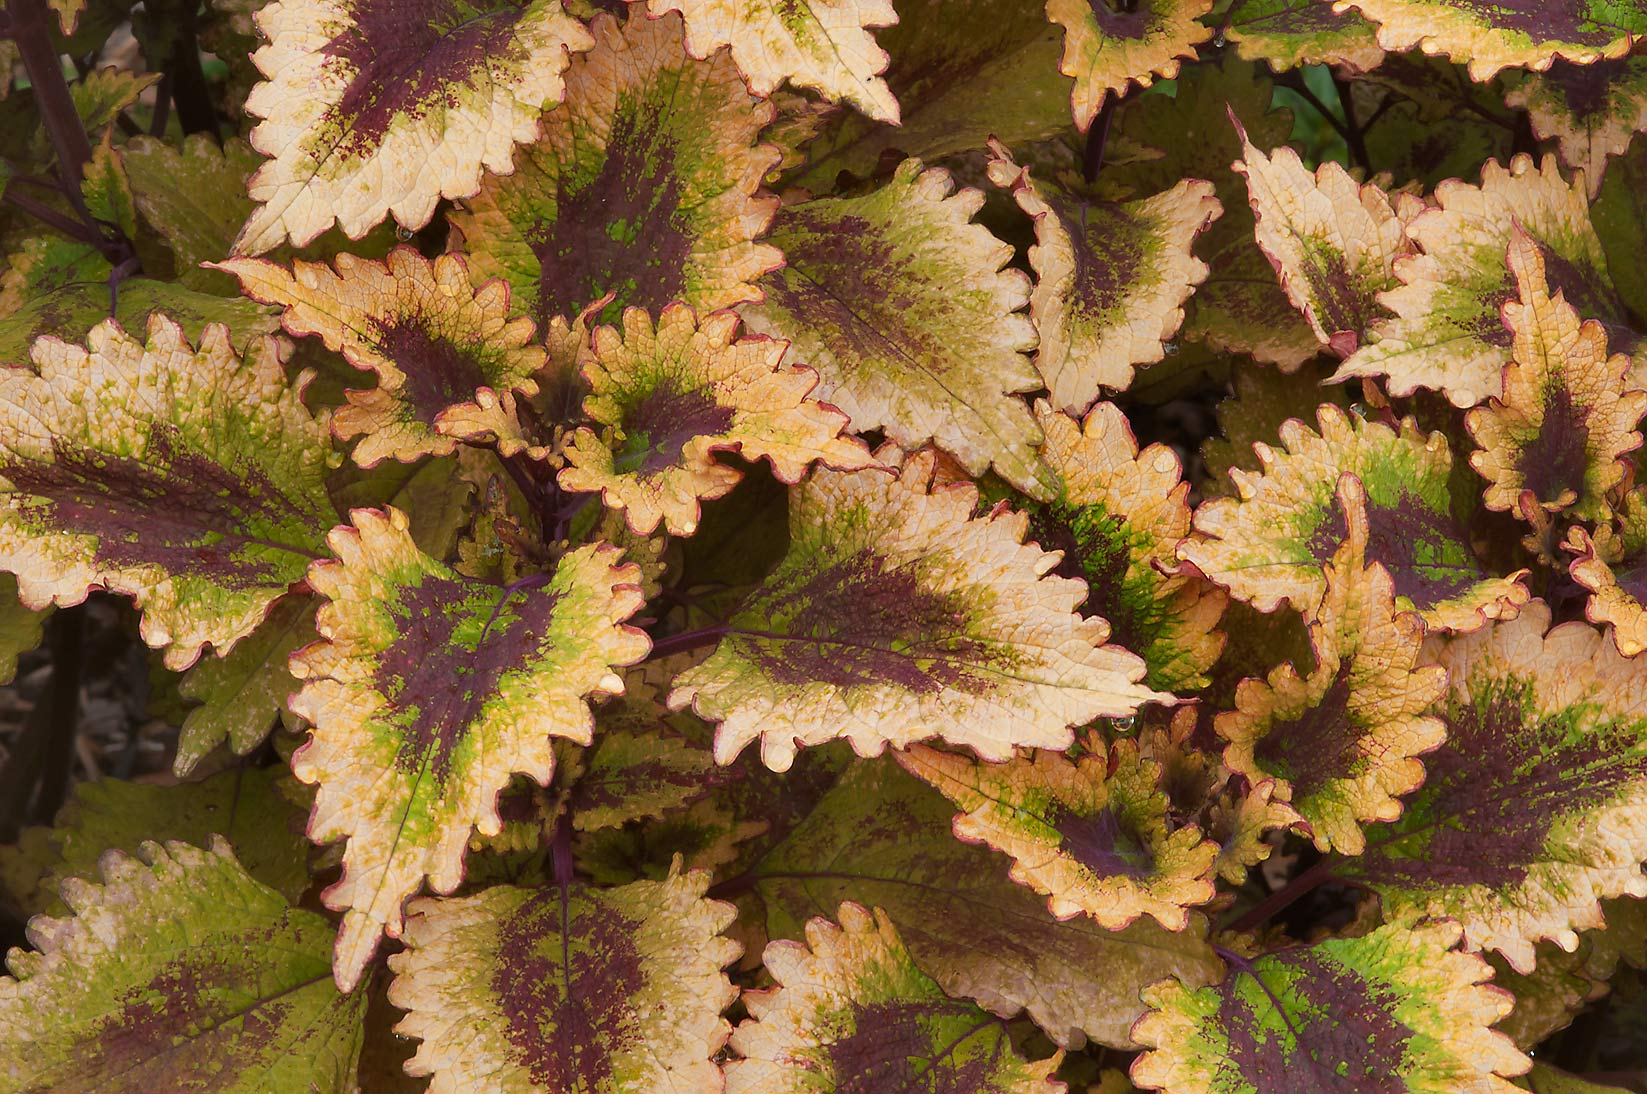 Brown and white leaves of coleus in Mercer...Gardens. Humble (Houston area), Texas